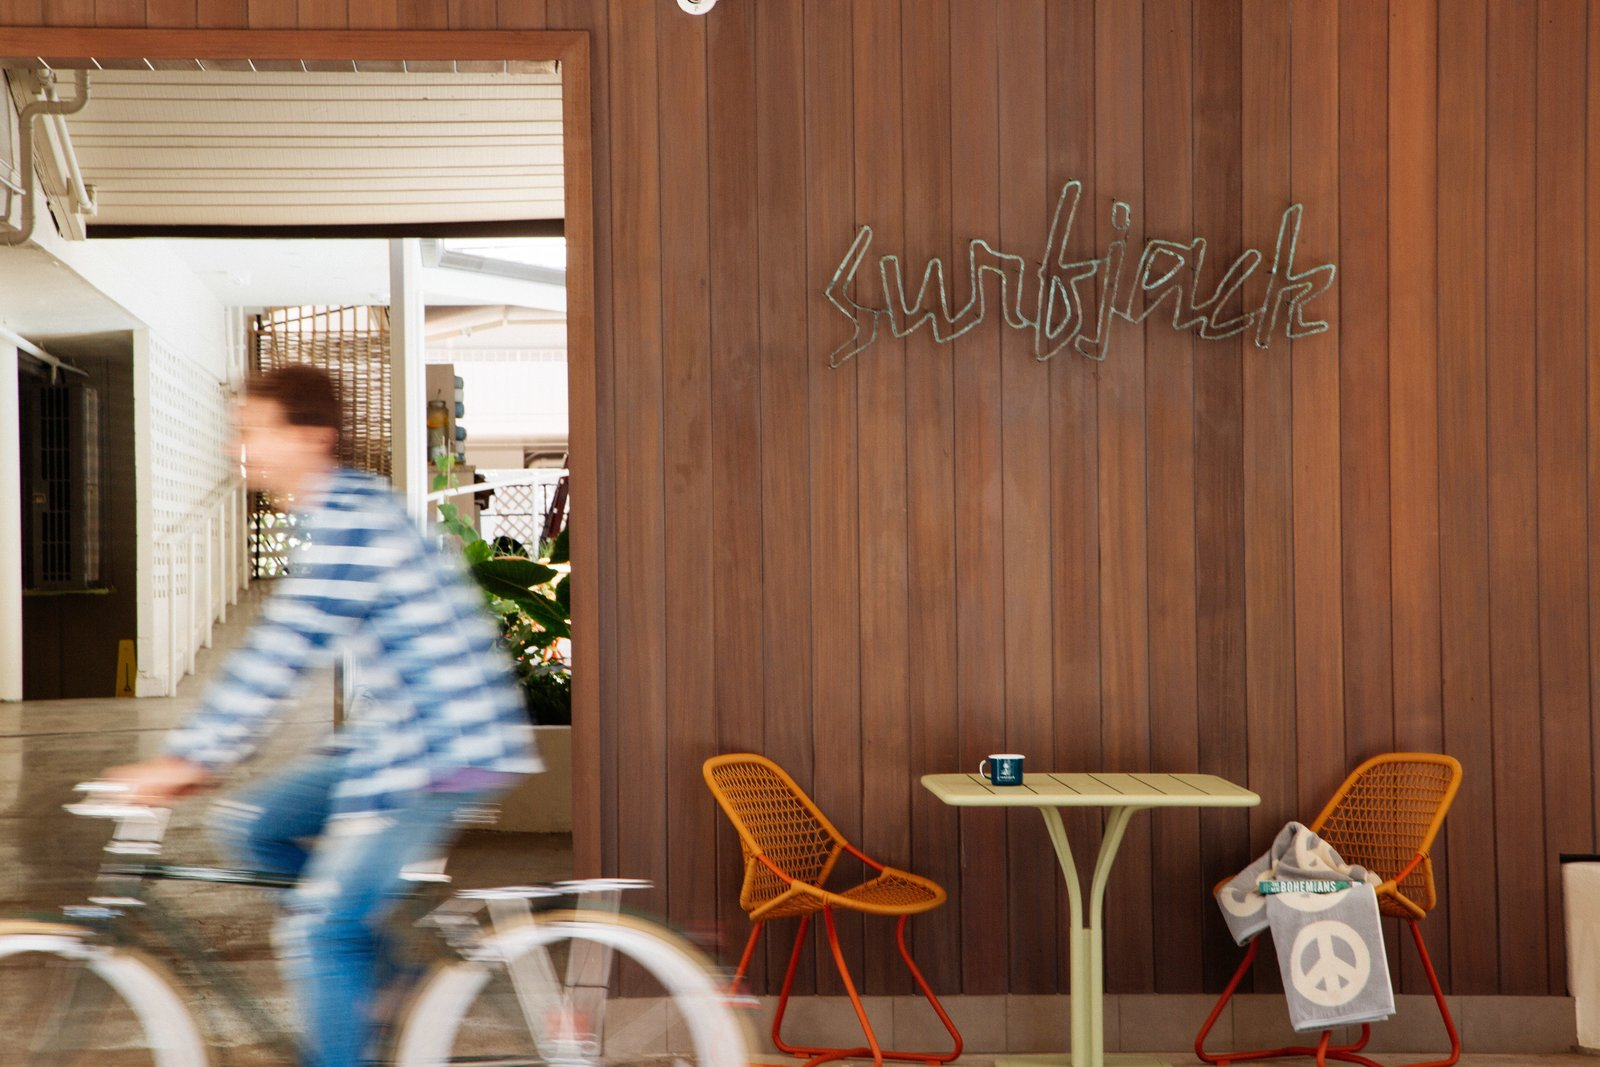 Dining Room, Chair, and Table When you first approach the Surfjack, a handmade copper sign welcomes you that was created by Jason Dow, a local jewelry designer.  The Surfjack Hotel & Swim Club from This Surf-Inspired Hotel Celebrates Waikiki's Creative Spirit and its Midcentury Roots